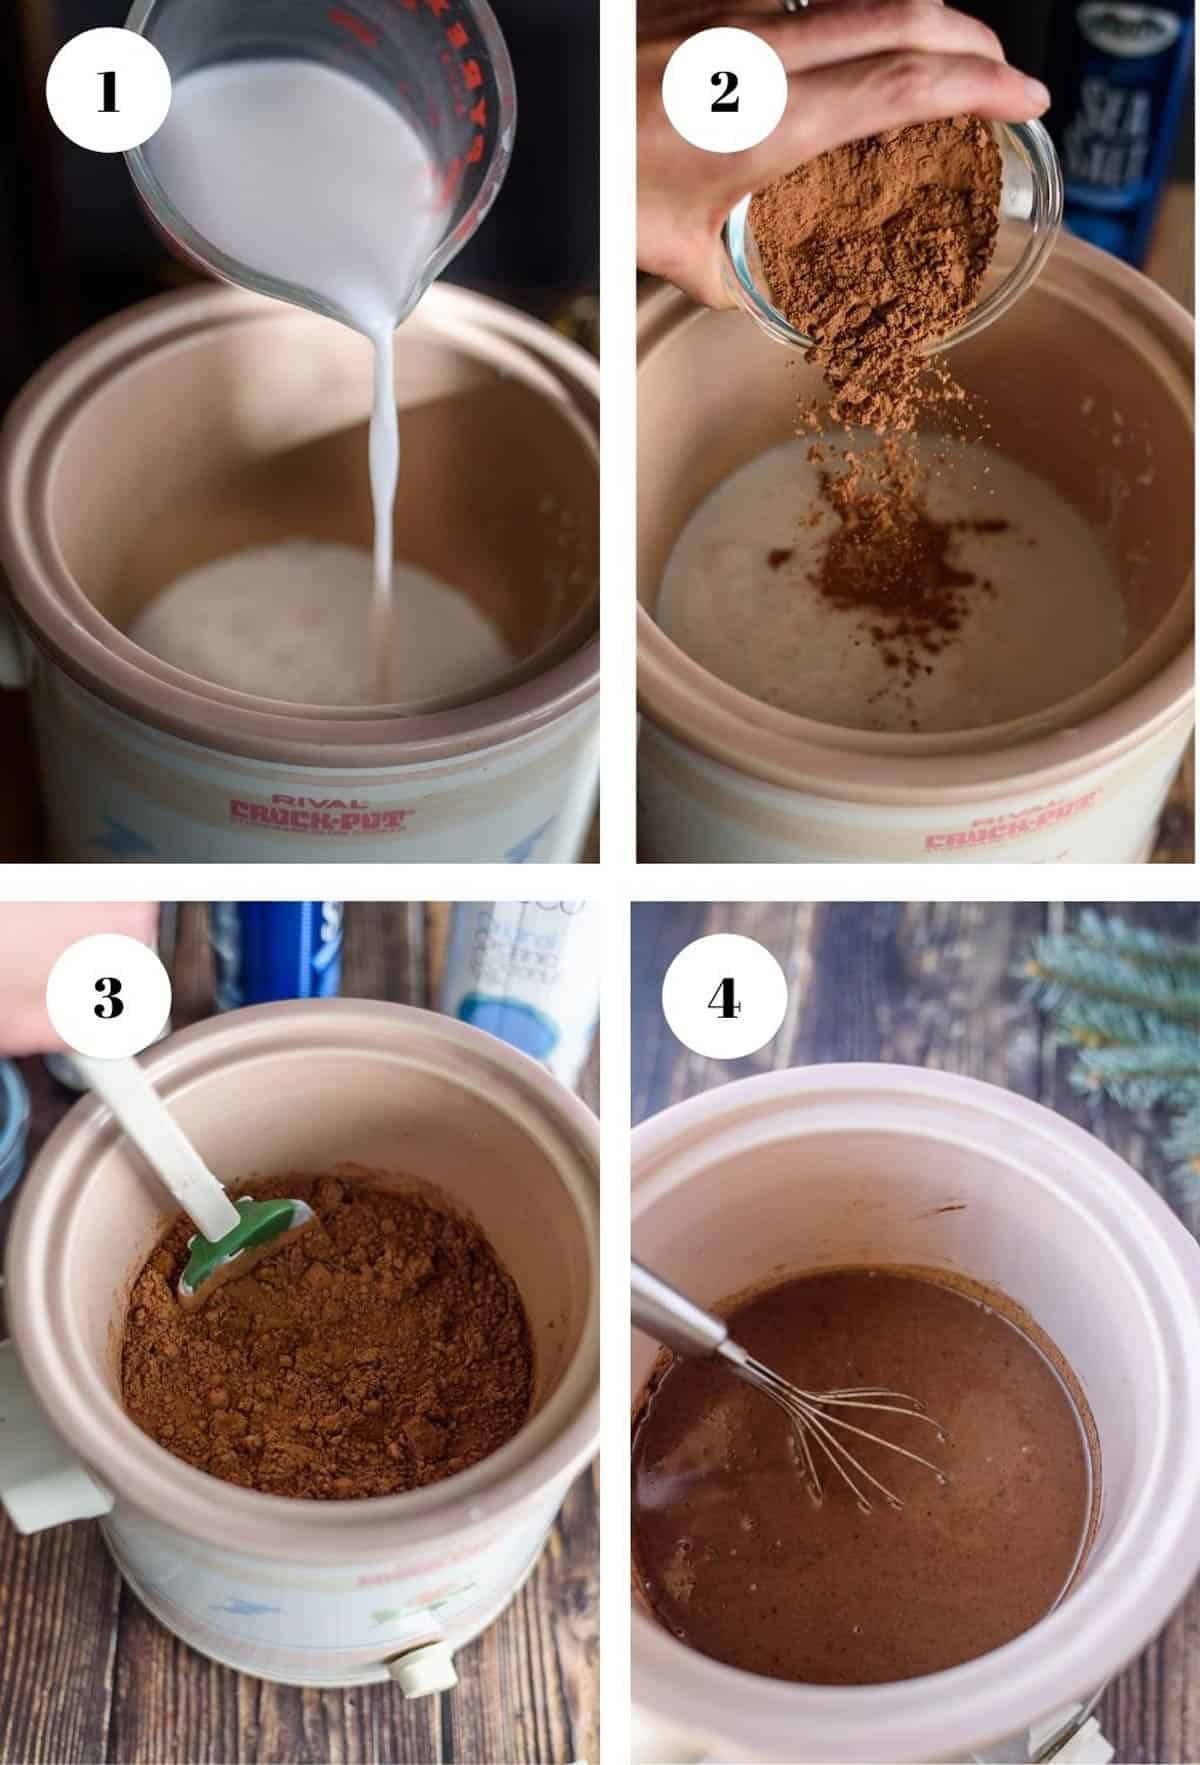 Pouring ingredients into a crock pot for vegan hot chocolate